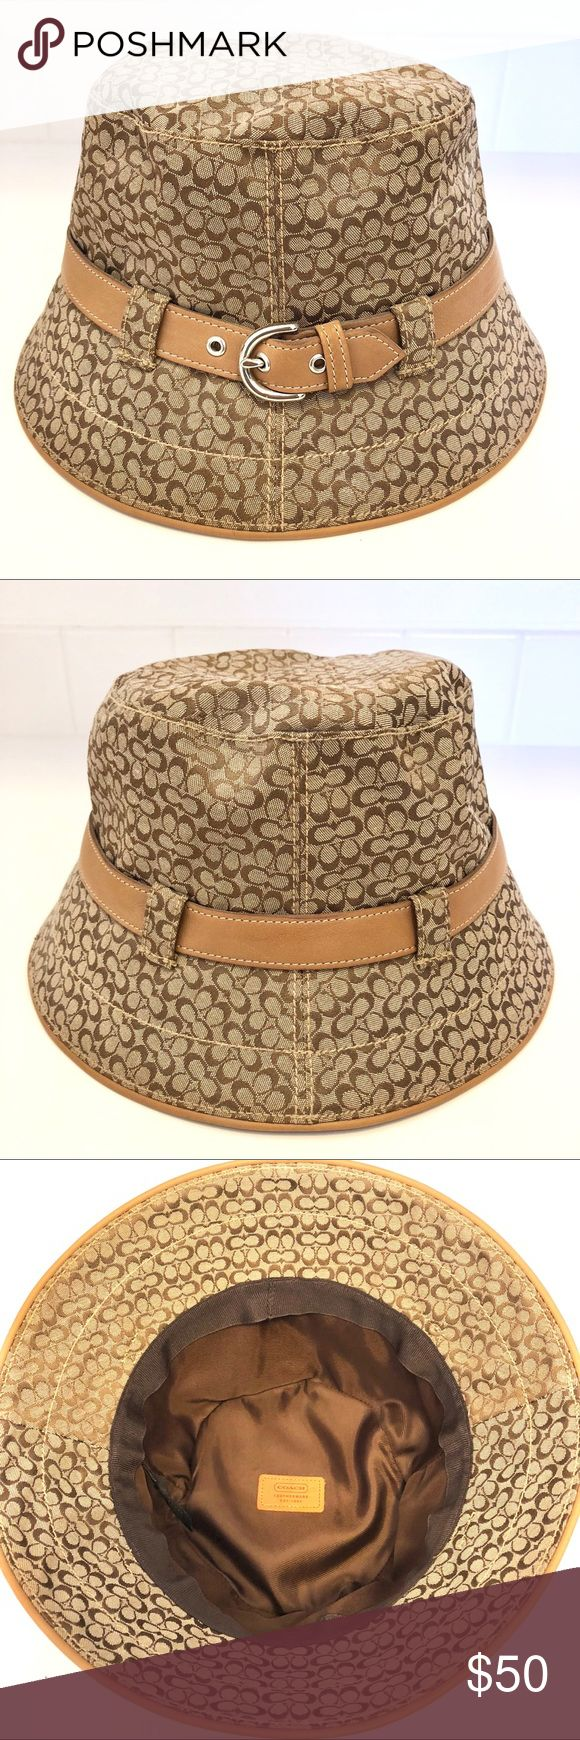 Coach signature print bucket hat True confessions, I love to buy hats but I never wear them. This signature print coach hat is trimmed in leather and would be perfect for a European vacation! It's never been worn so it's in new condition and collapses flat so it would be easy to pack. NWOT. Coach Accessories Hats